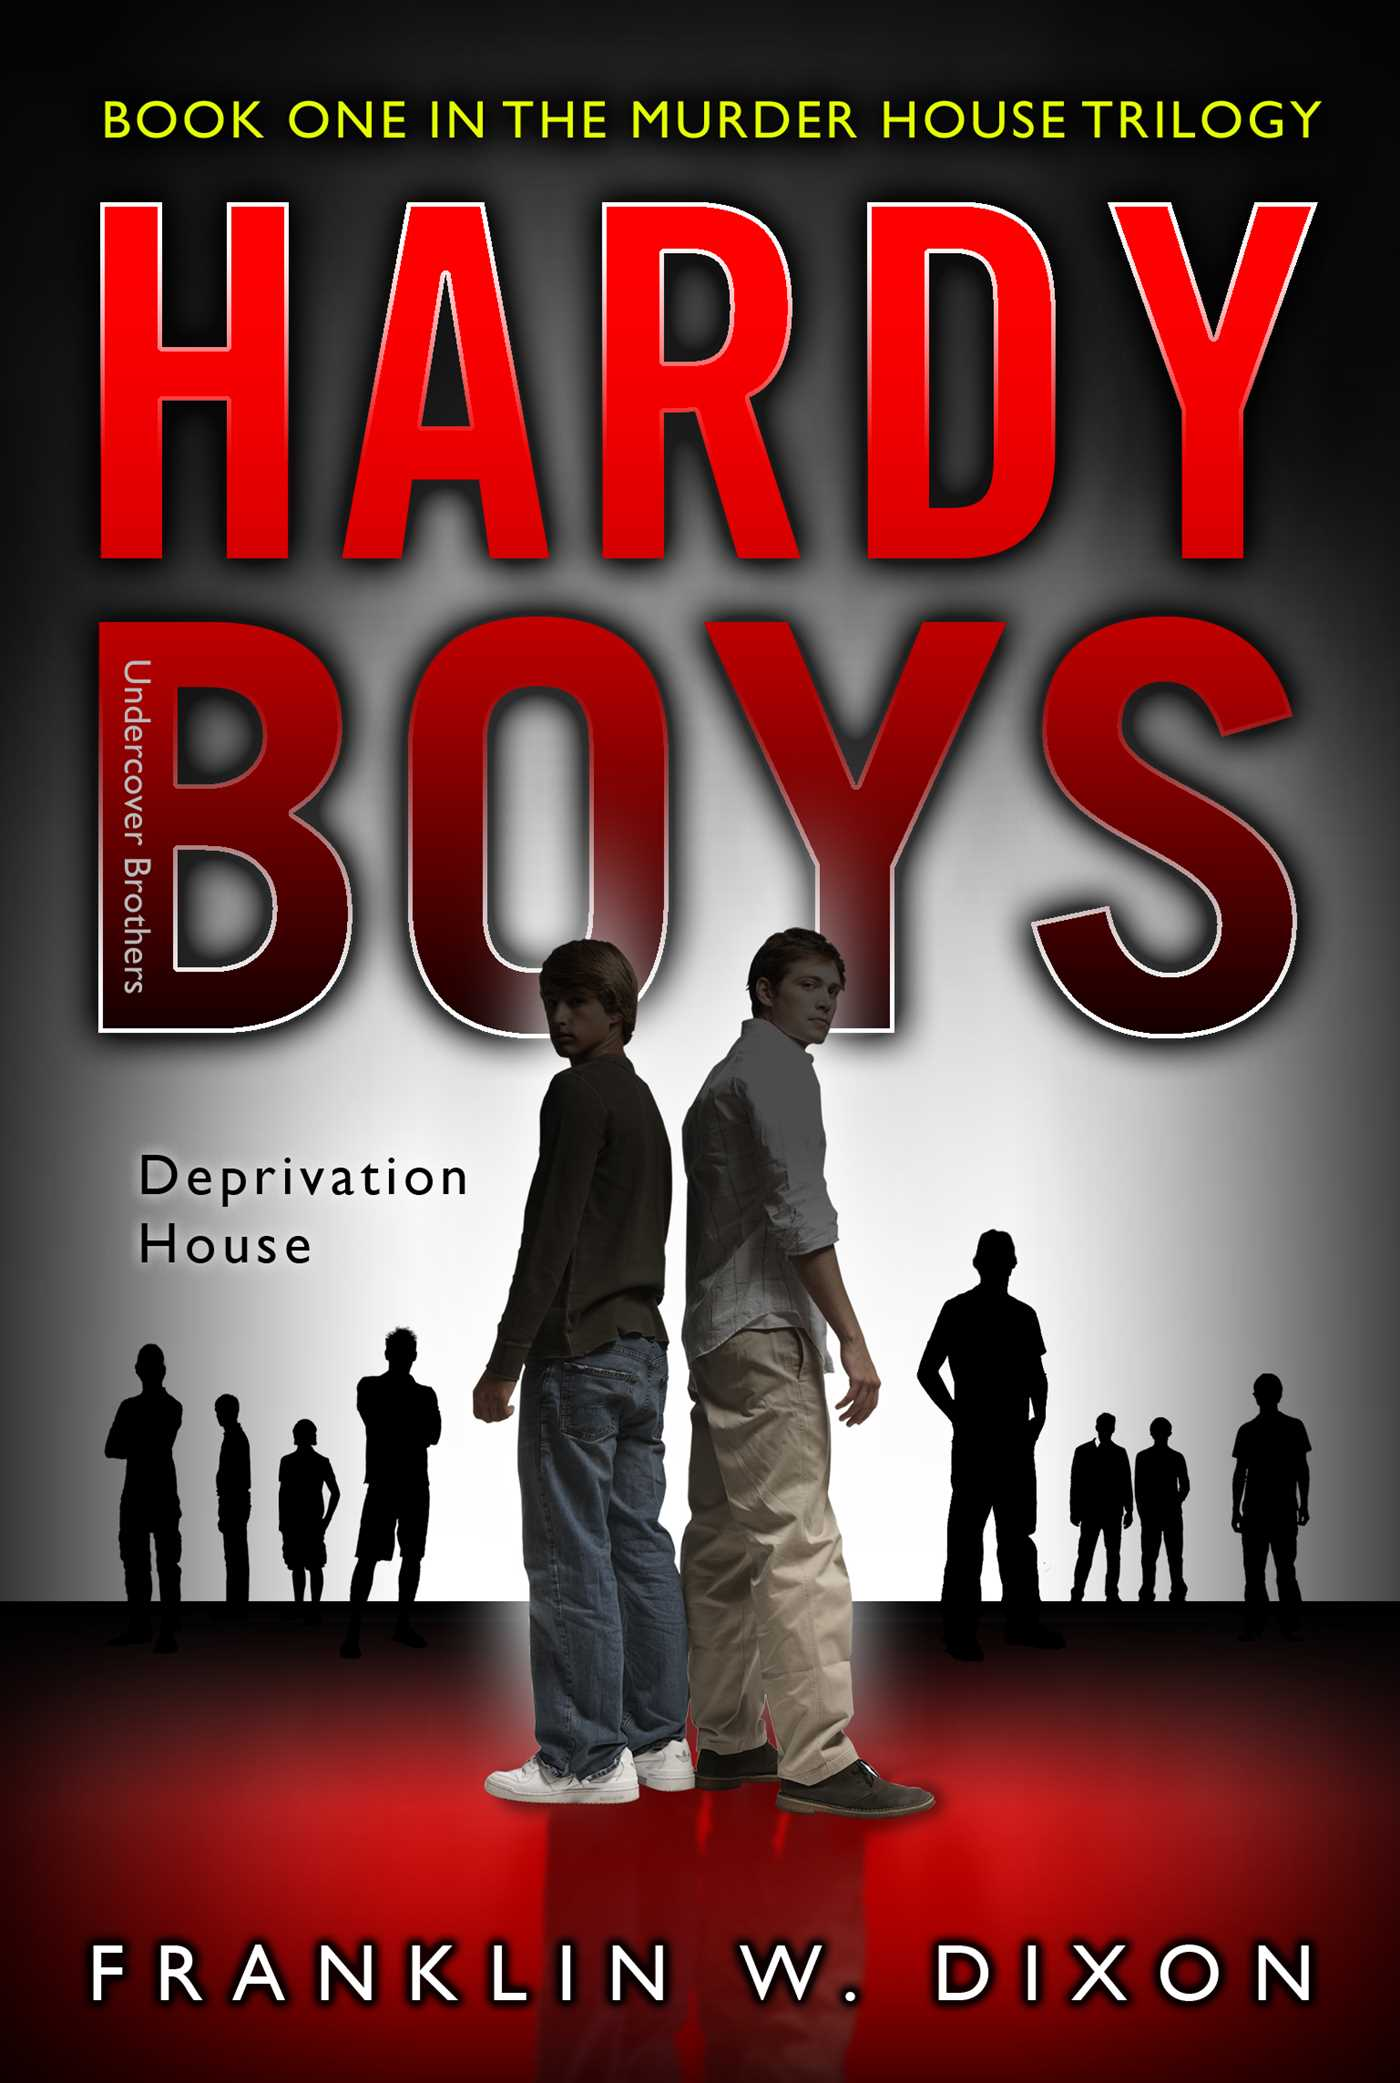 a literary analysis of the hardy boys by franklin w dixon Fiction & literature foreign language titles health & wellness history kids the hardy boys #3: the secret of the old mill by franklin w dixon the hardy boys #6: the shore road mystery by franklin w dixon the hardy boys #7.